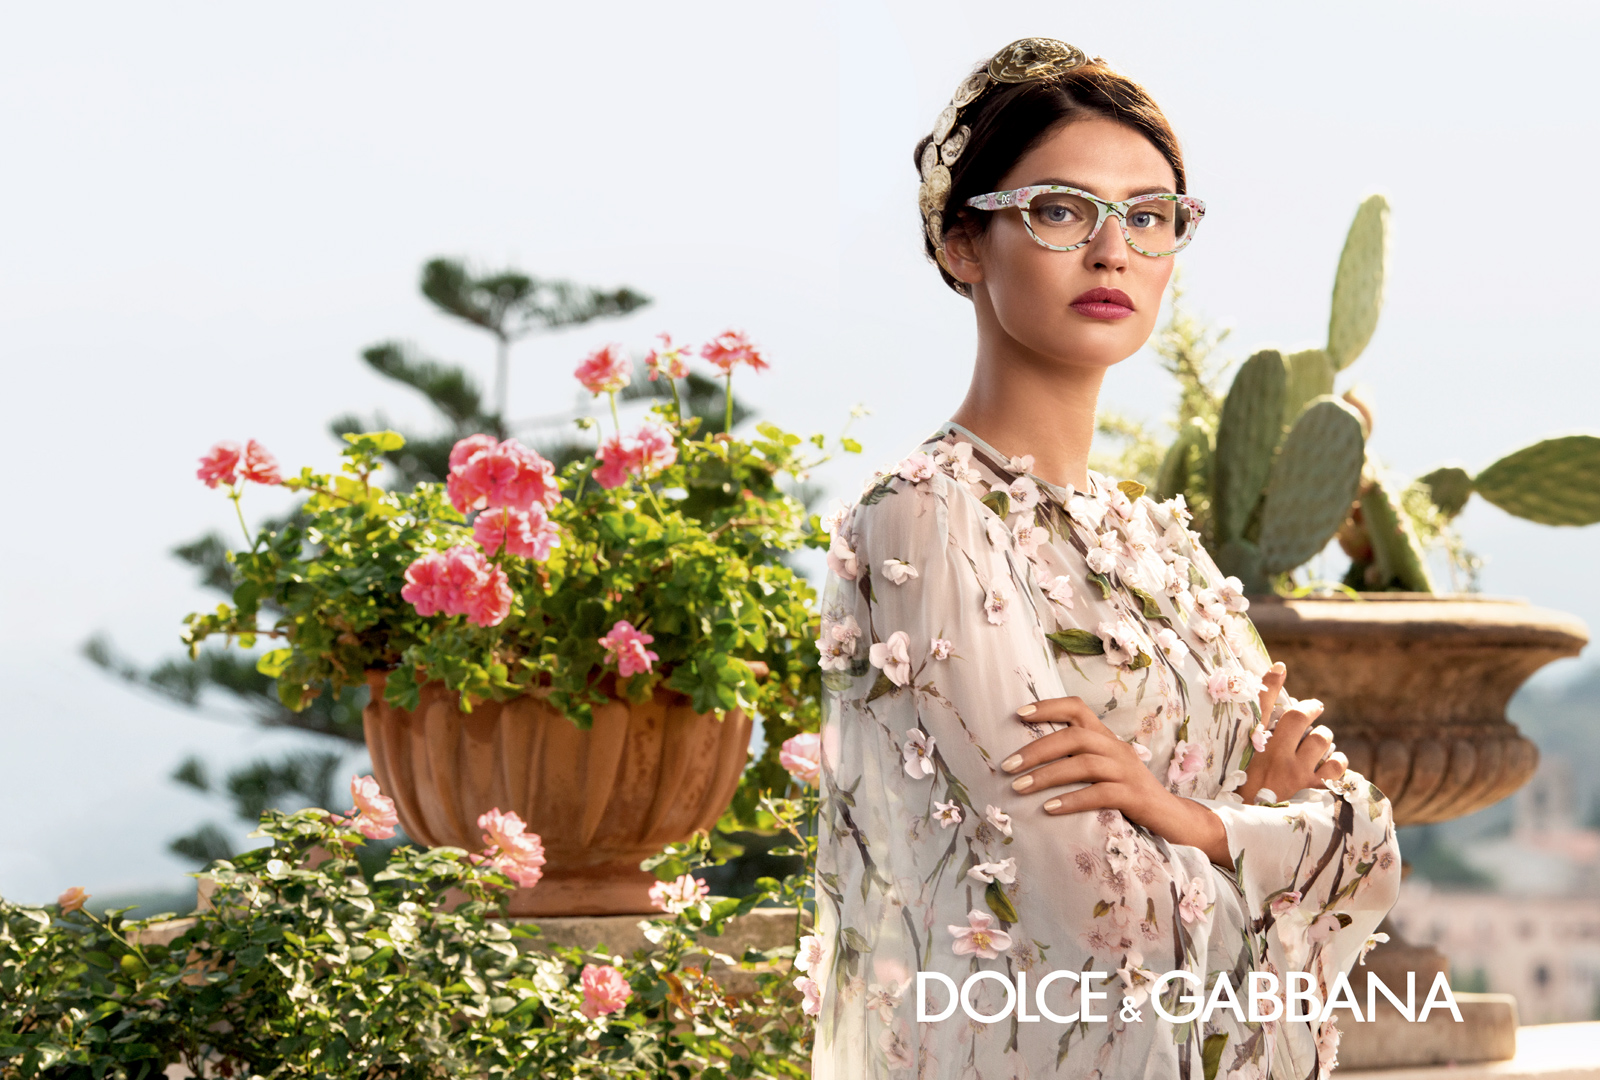 dolce-gabbana-adv-optical-campaign-ss-2014-women-03-zoom